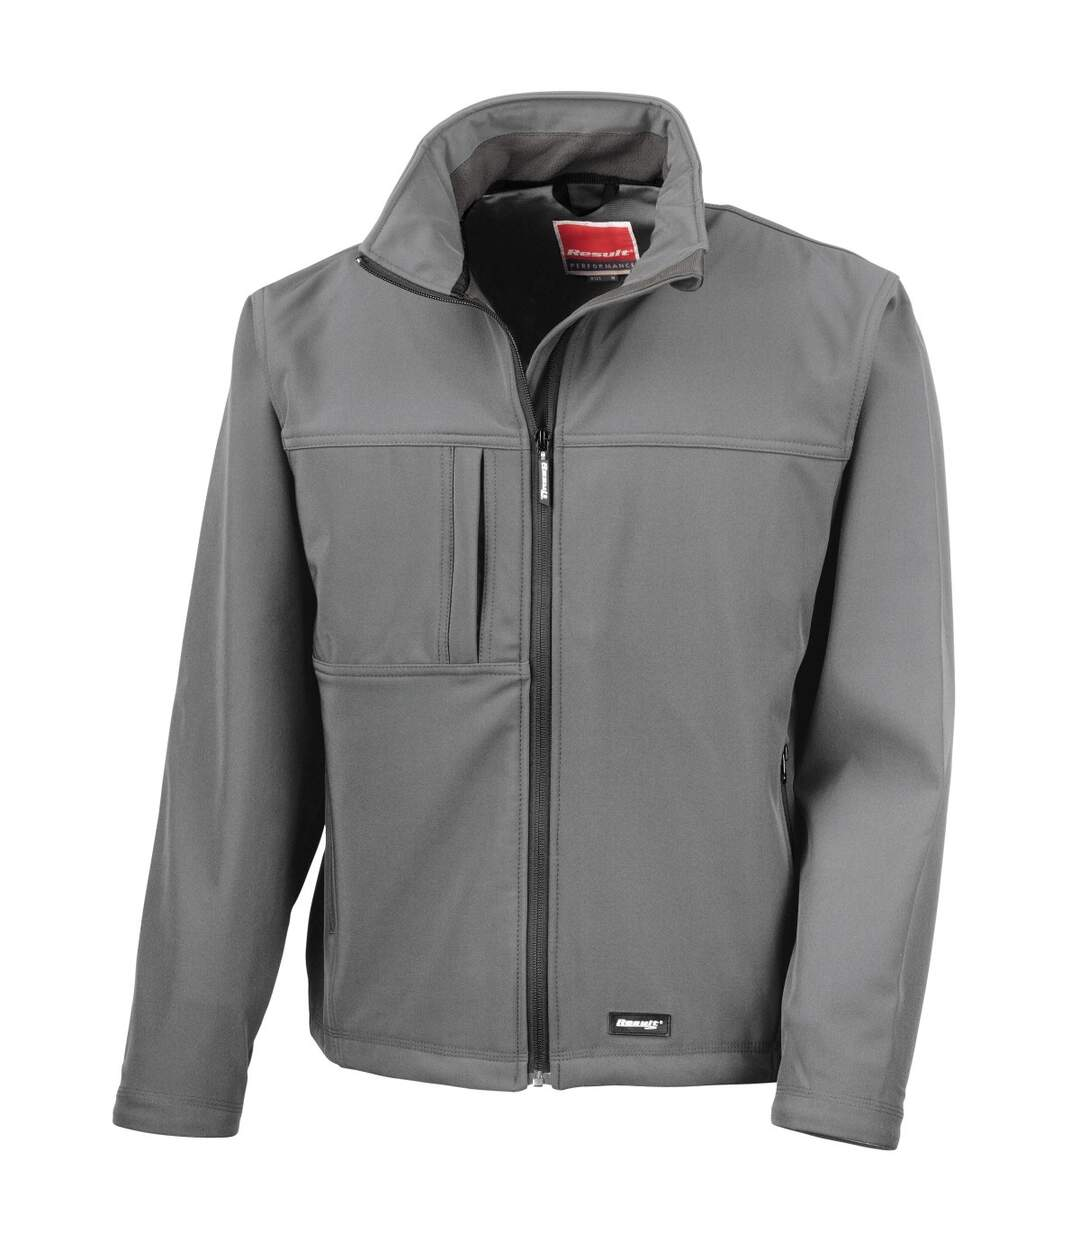 Result Mens Softshell Premium 3 Layer Performance Jacket (Waterproof, Windproof & Breathable) (Grey) - UTBC2046